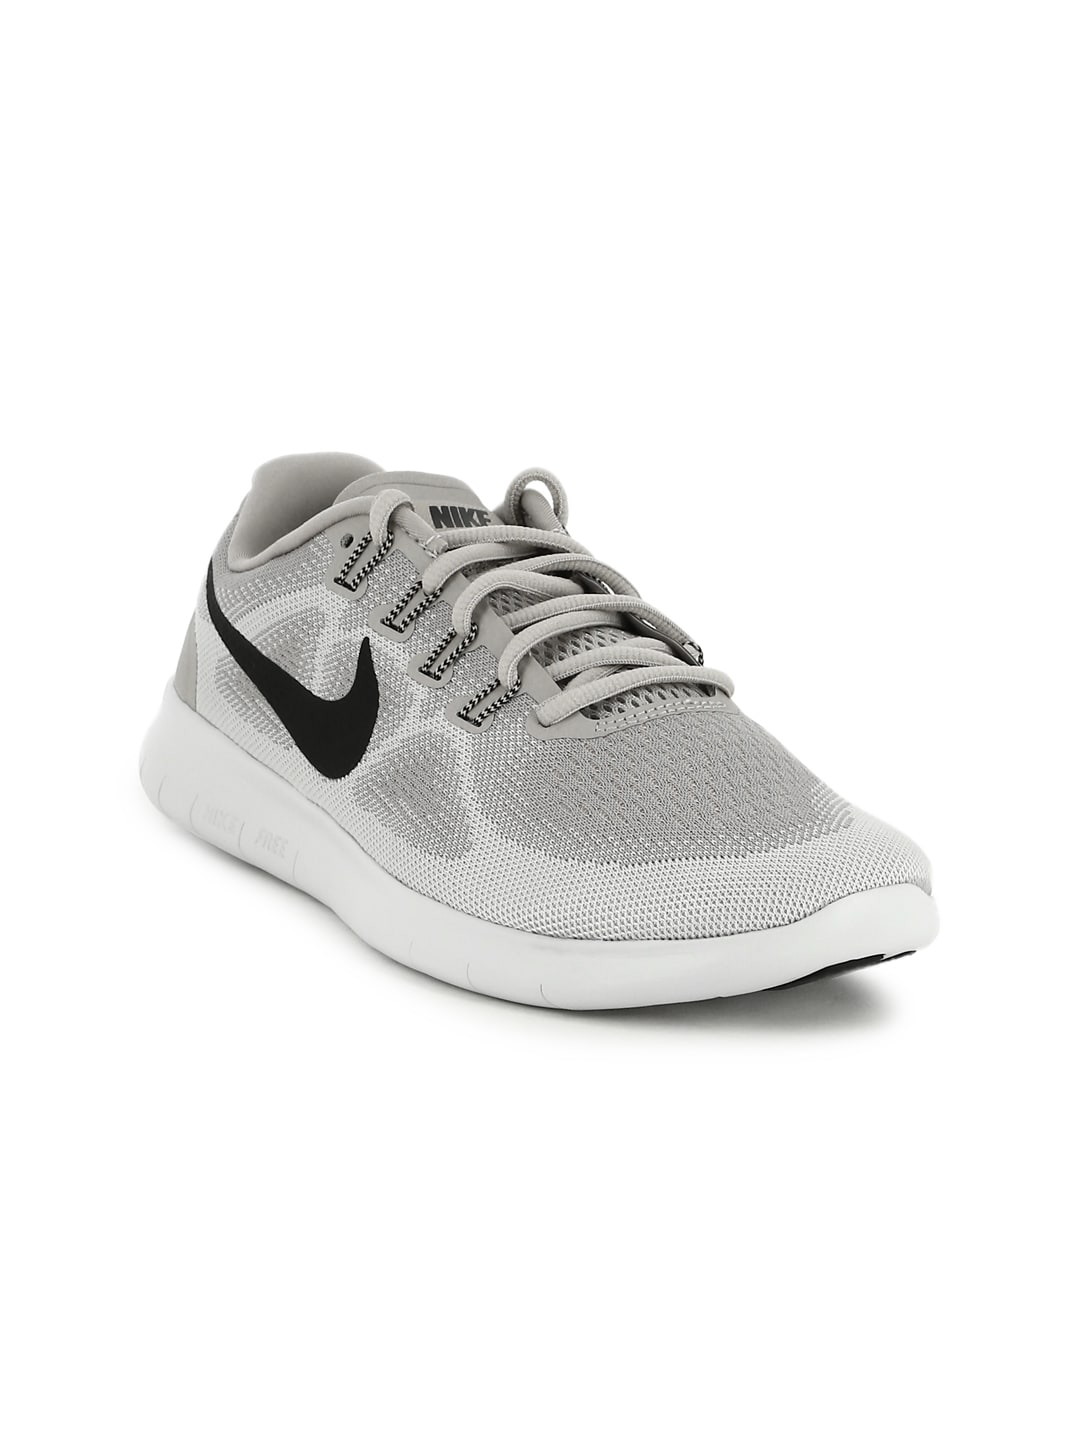 a3a26967e102 Nike Free Running Shoes - Buy Nike Free Running Shoes online in India